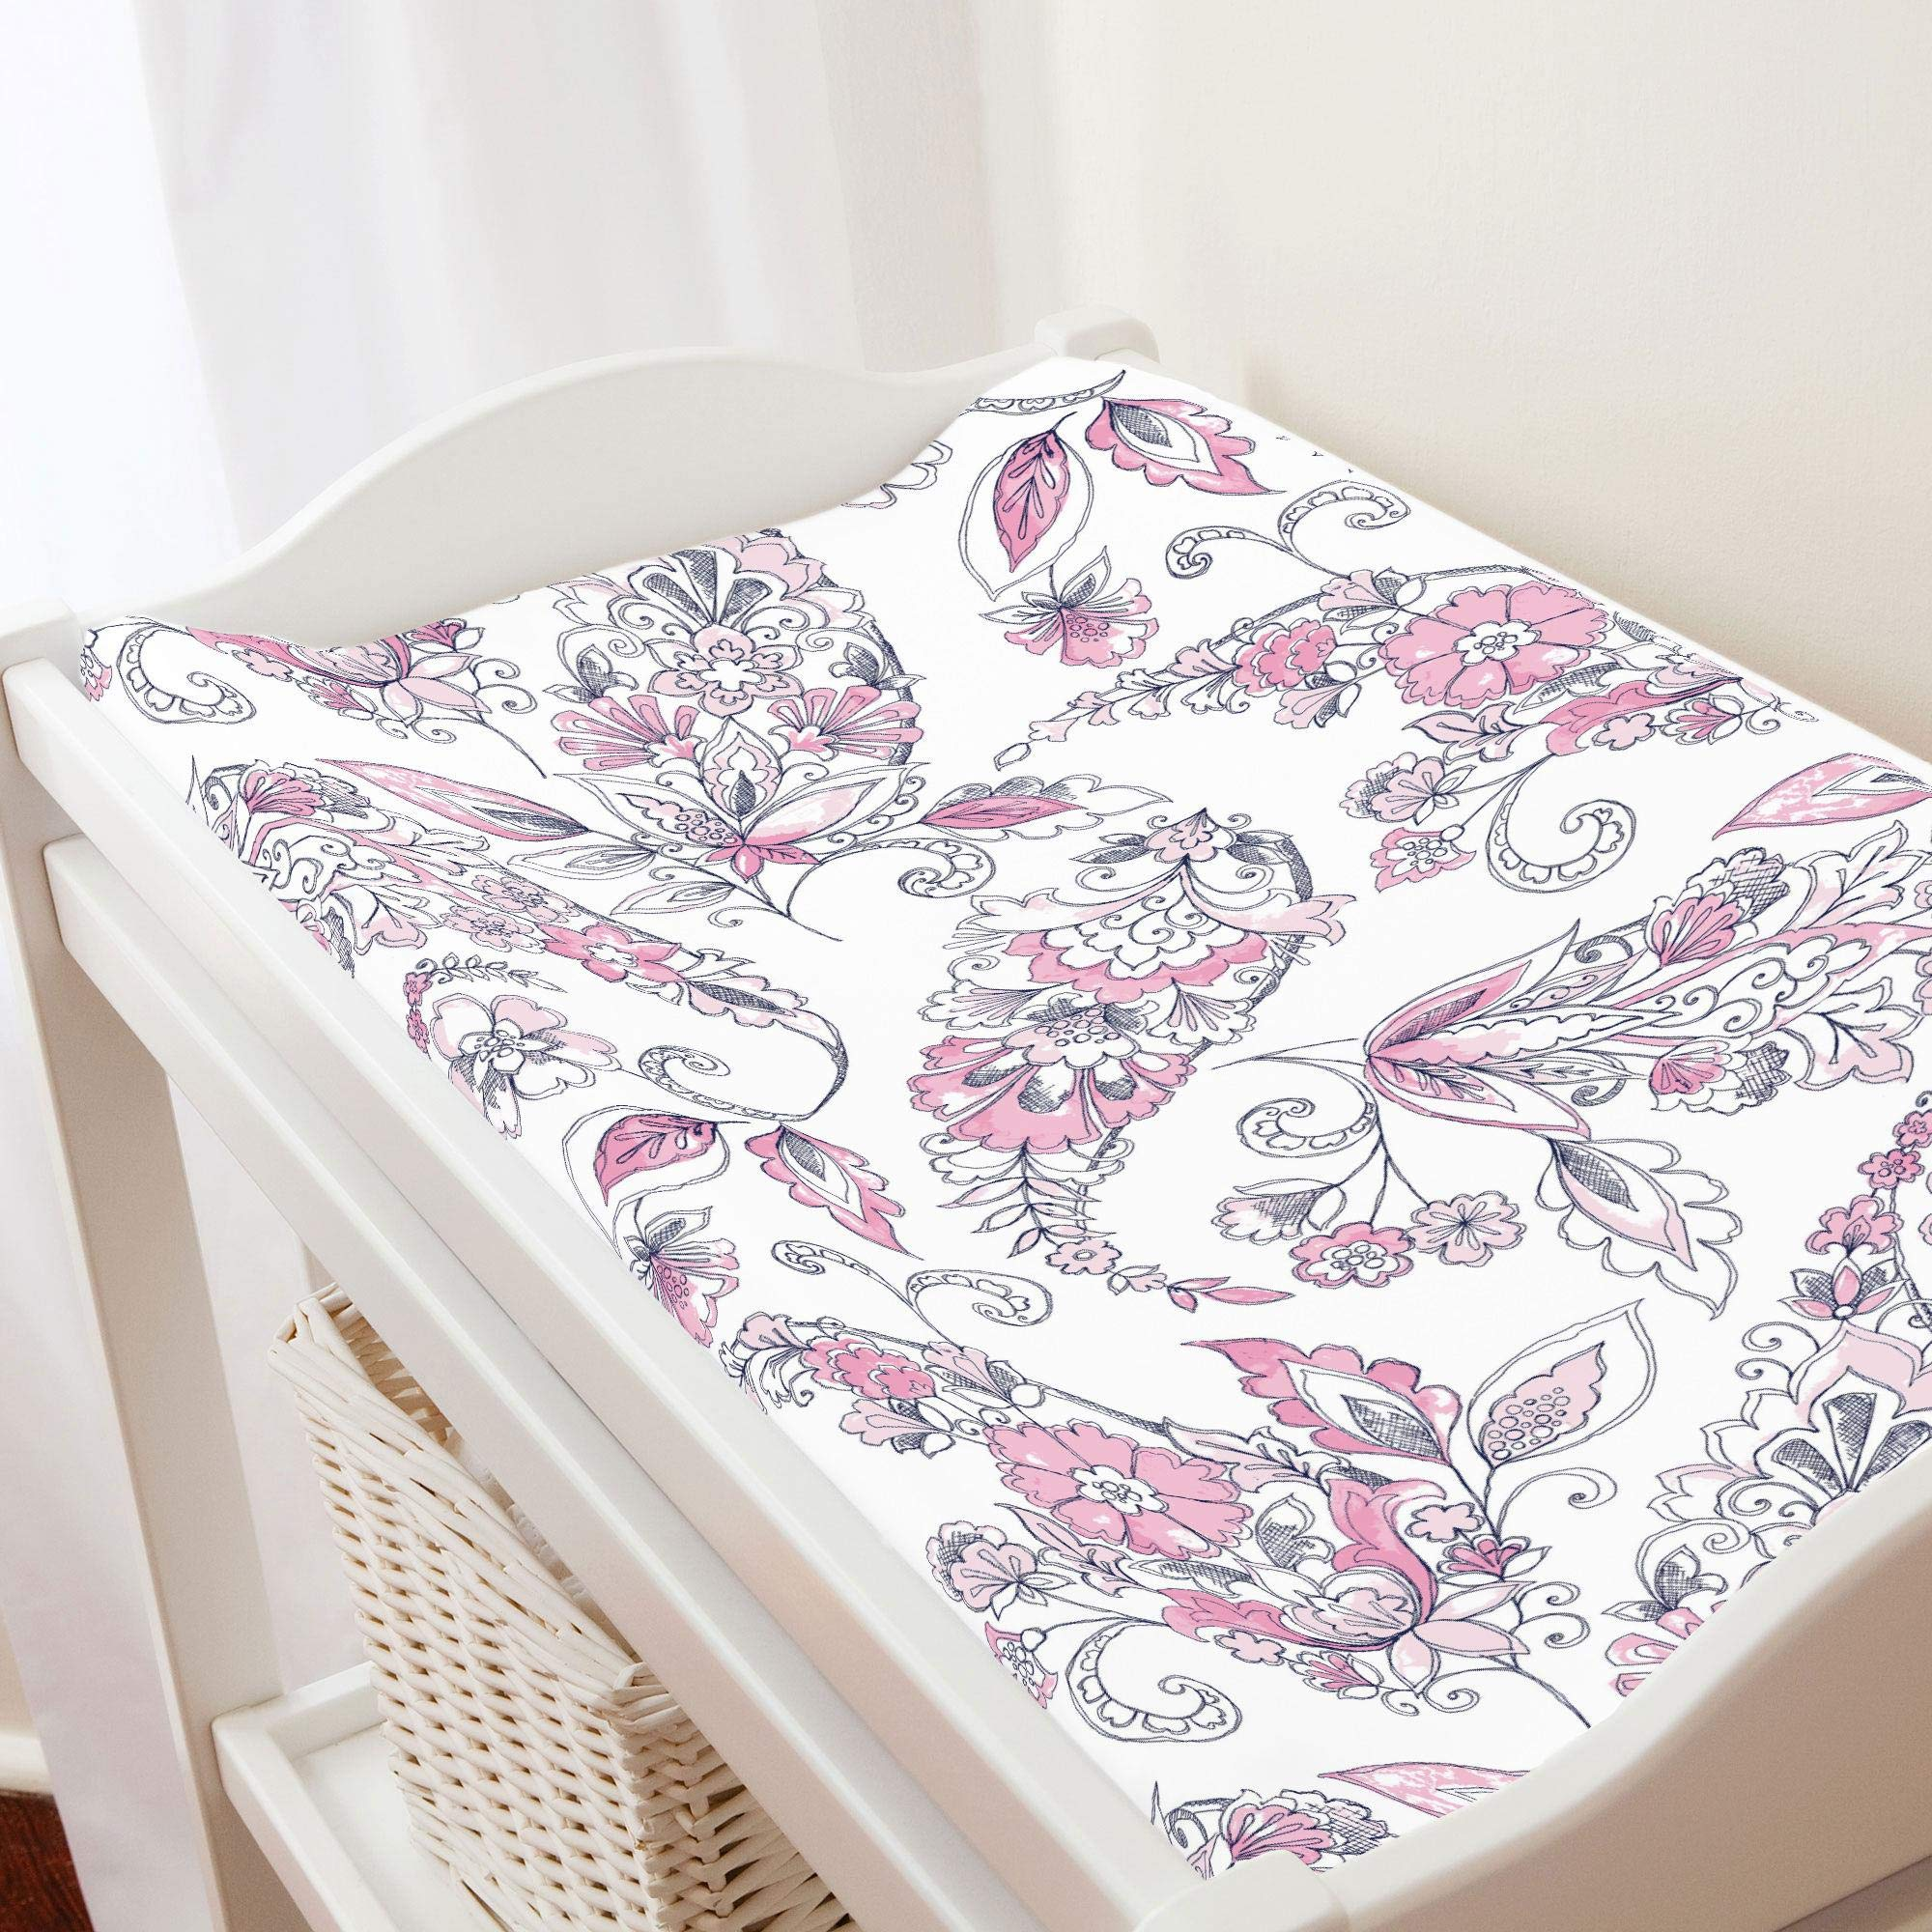 Carousel Designs Pink and Navy Sketchbook Floral Changing Pad Cover - Organic 100% Cotton Change Pad Cover - Made in The USA